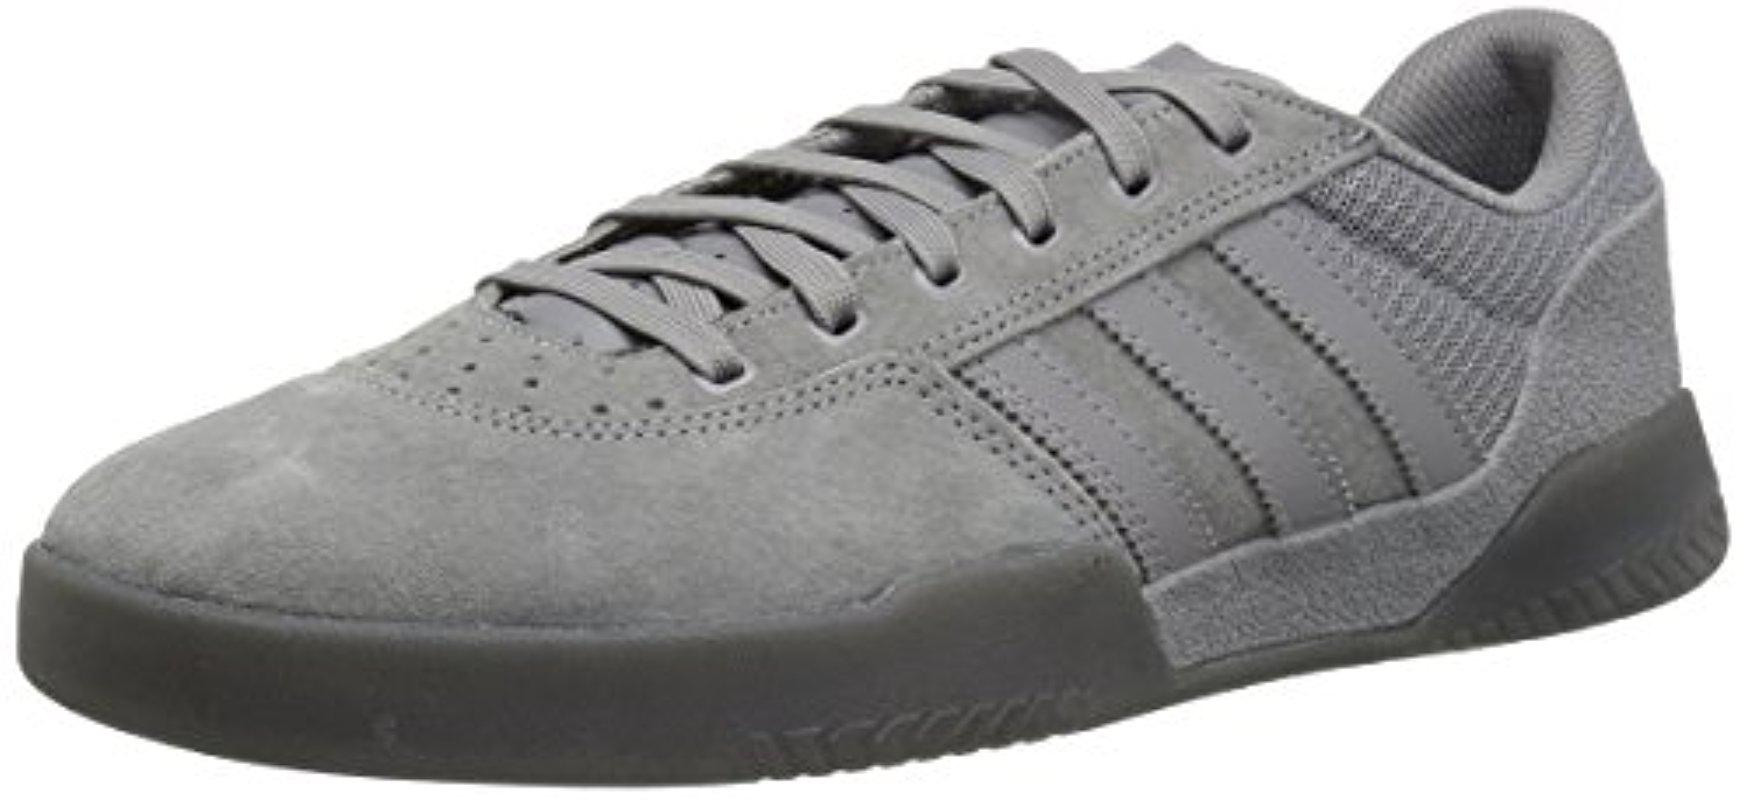 sports shoes 7c841 34cfe Lyst - adidas Originals City Cup Skate Shoe in Gray for Men